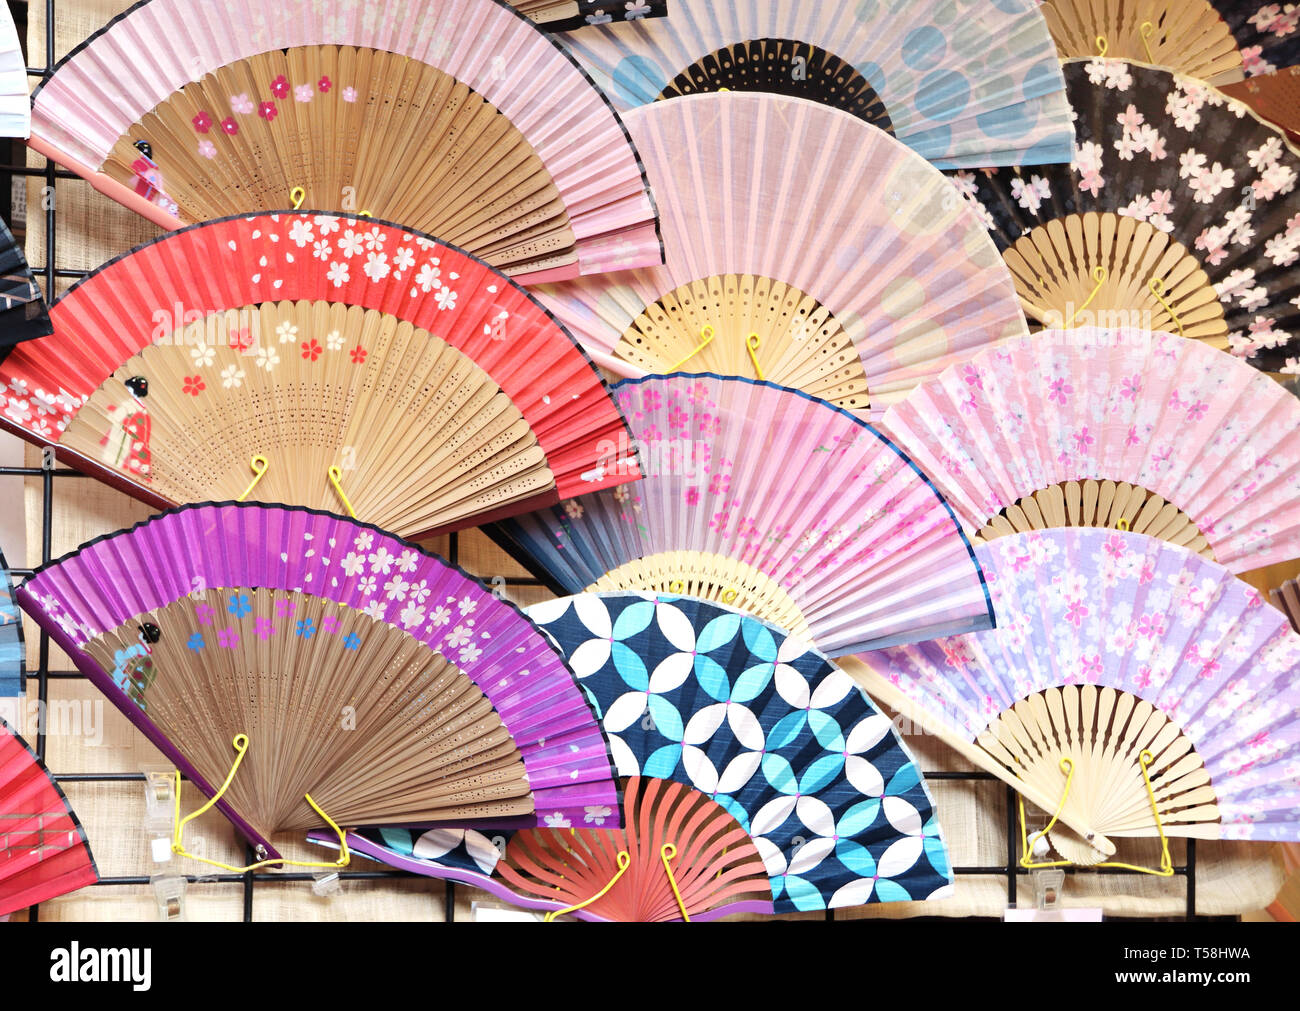 69bf41885071c Souvenirs - traditional Japanese fans with sakura flowers ornaments - Stock  Image